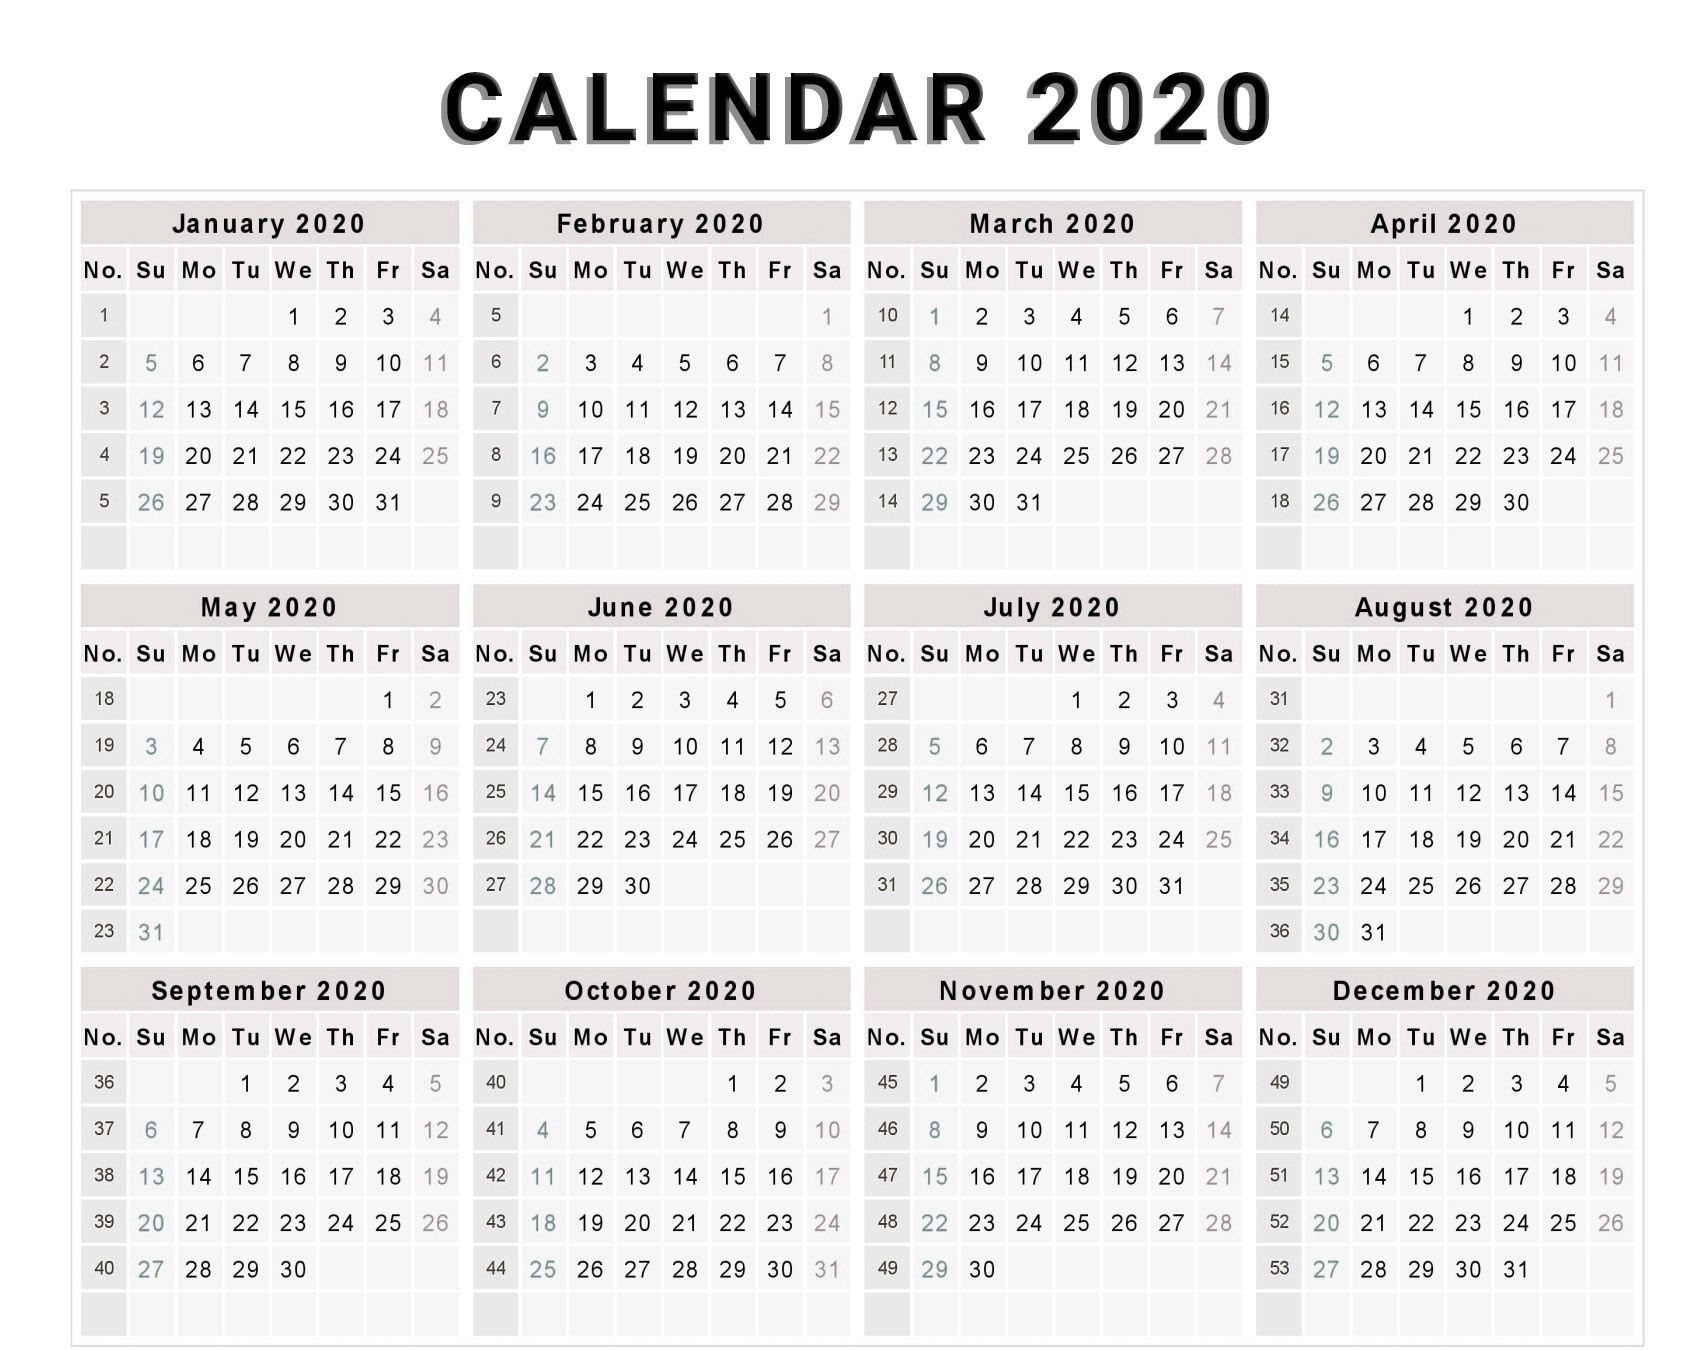 Calendar 2020 Free Template With Weeks | Free Calendar Remarkable Printable Calendar With Numbered Days 2020